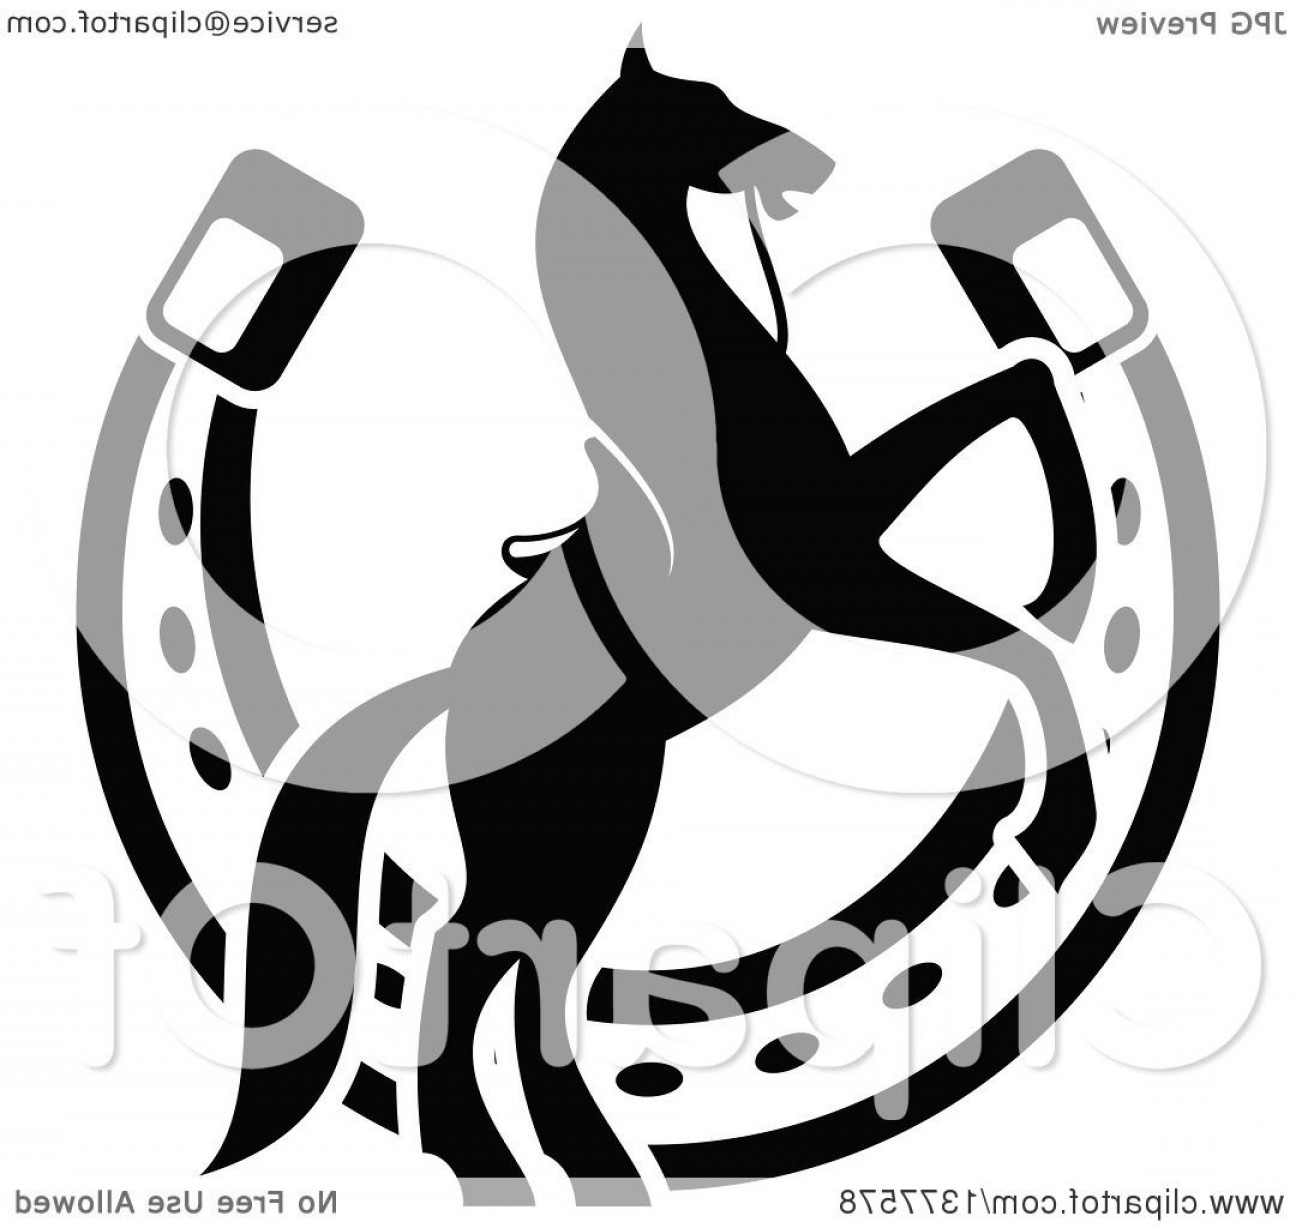 Tribal Vector Horseshoe Image: Black And White Silhouetted Saddled Horse Rearing Over A Horseshoe